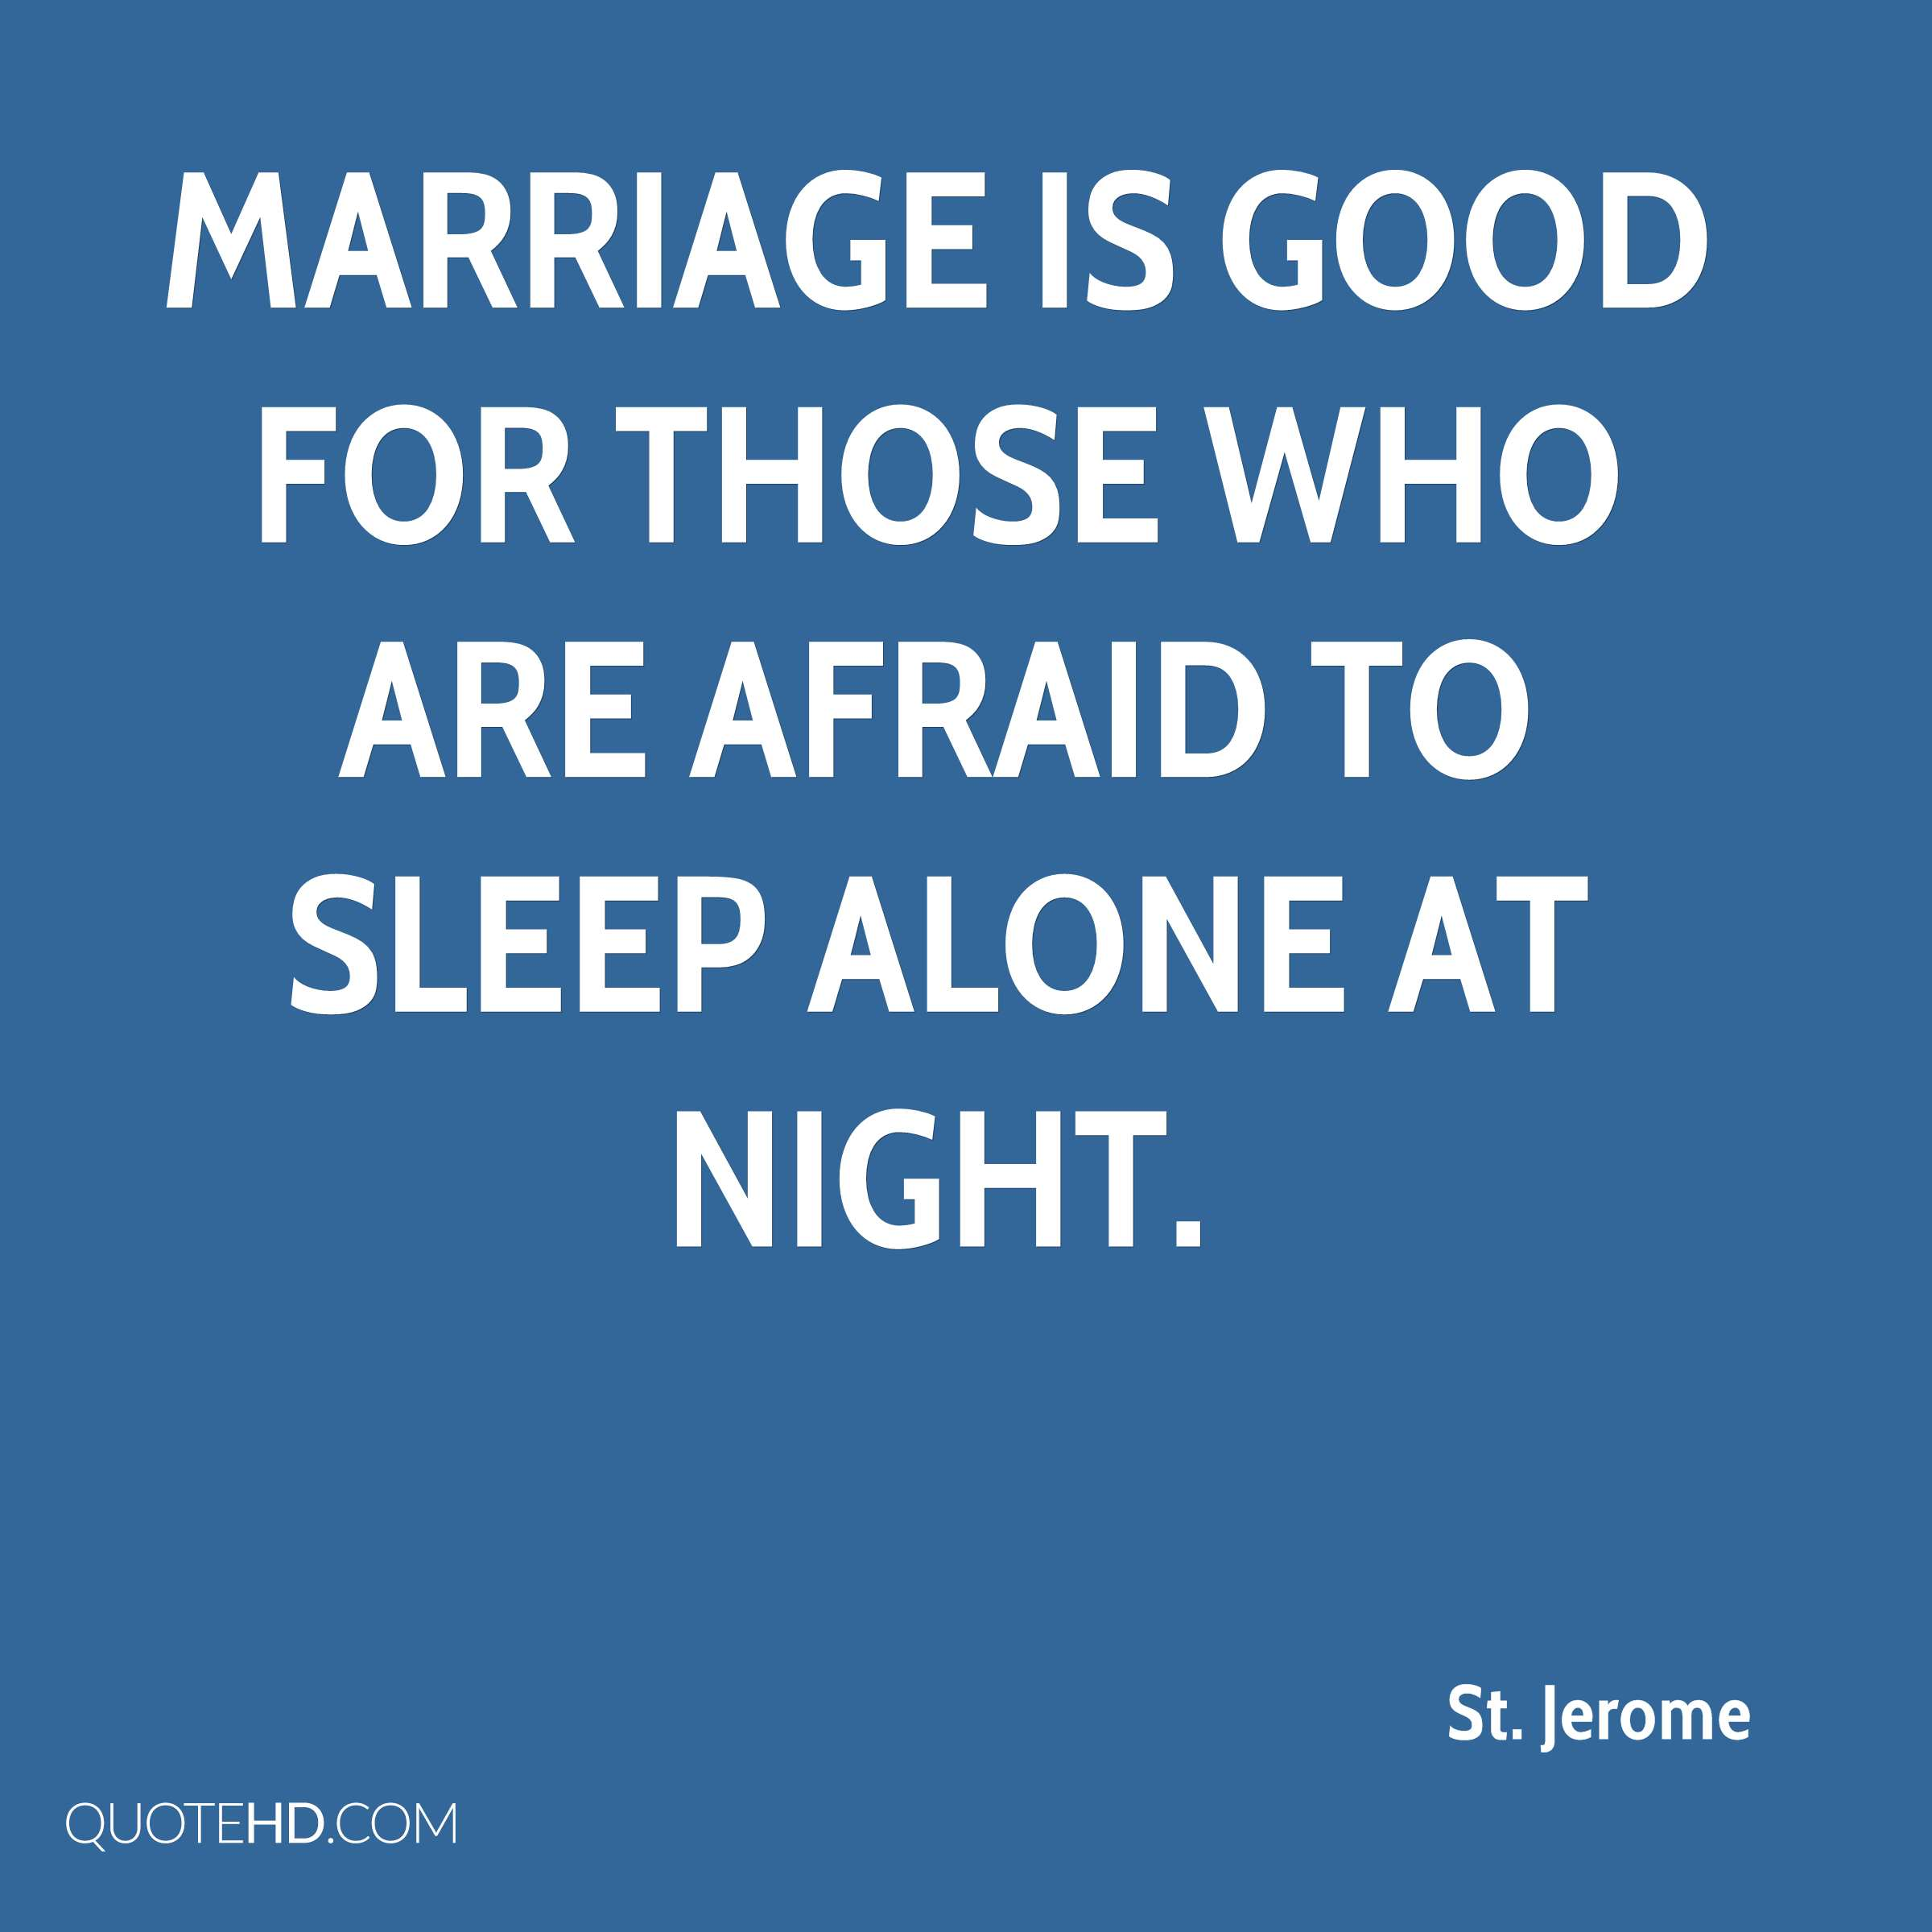 St. Jerome Marriage Quotes | QuoteHD